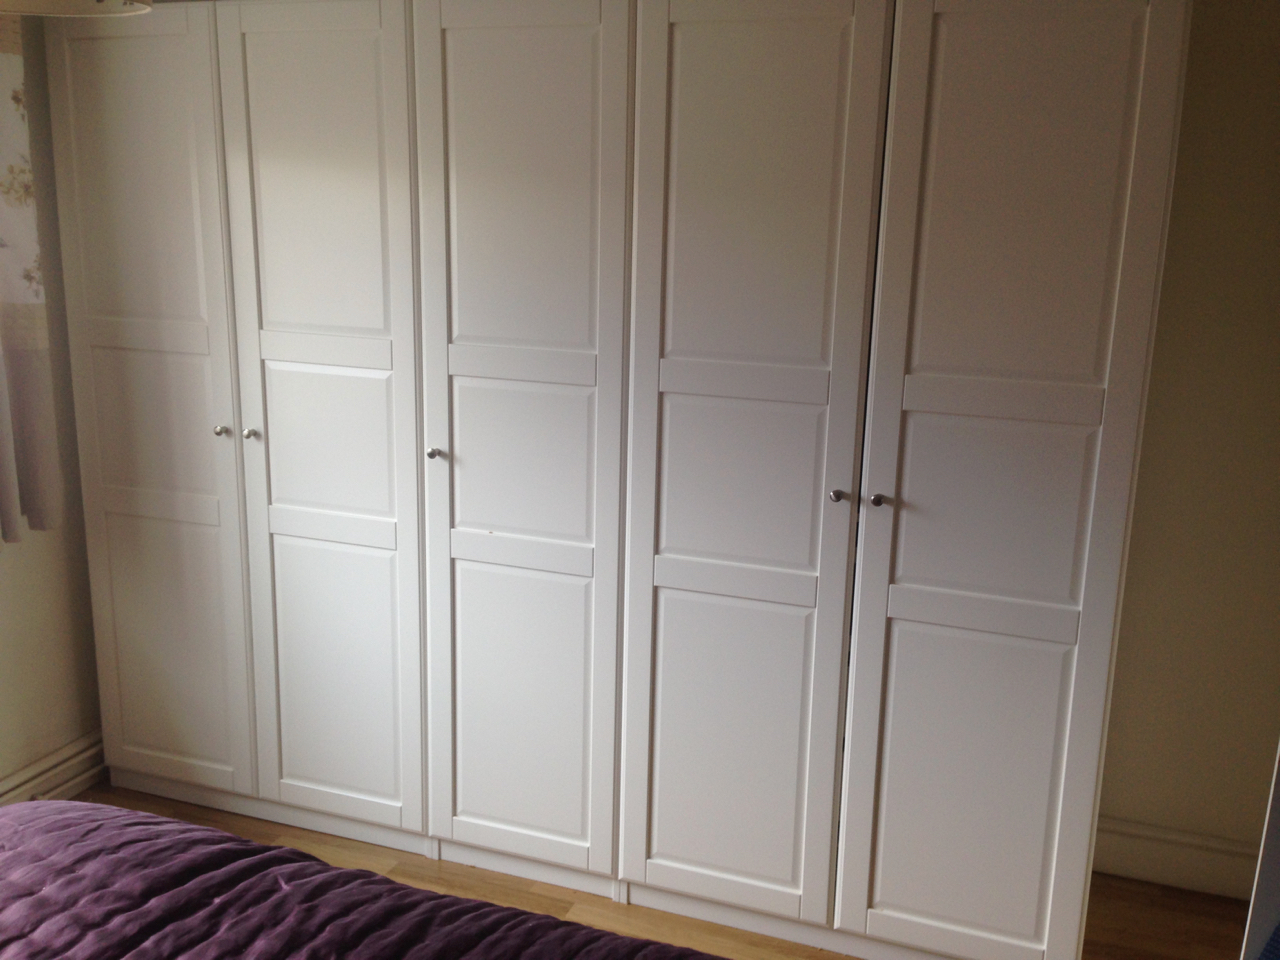 2.5m wide run of Ikea PAX hinged wardrobes assembled by www.norwichflatpack.co.uk